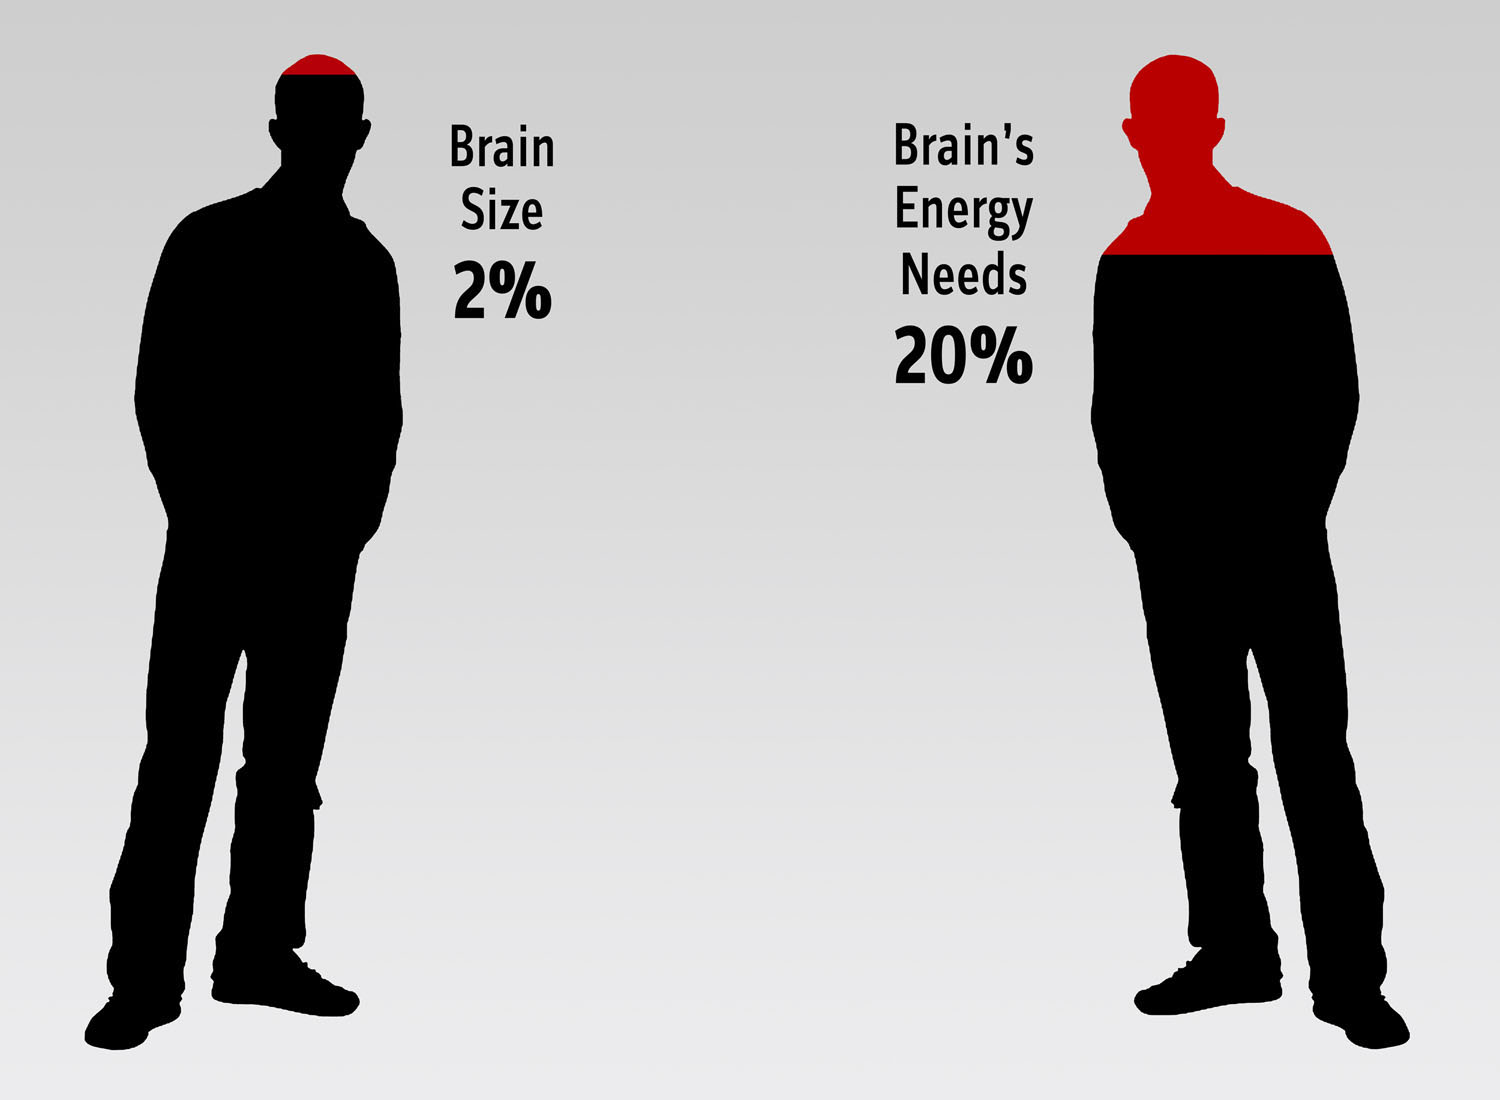 Human Brain Lack Simple Diagram Stem Classroom Ideas Brains The Smithsonian Institutions Origins Program Graphic Of Silhouettes Two Men And Text Size 2 Energy